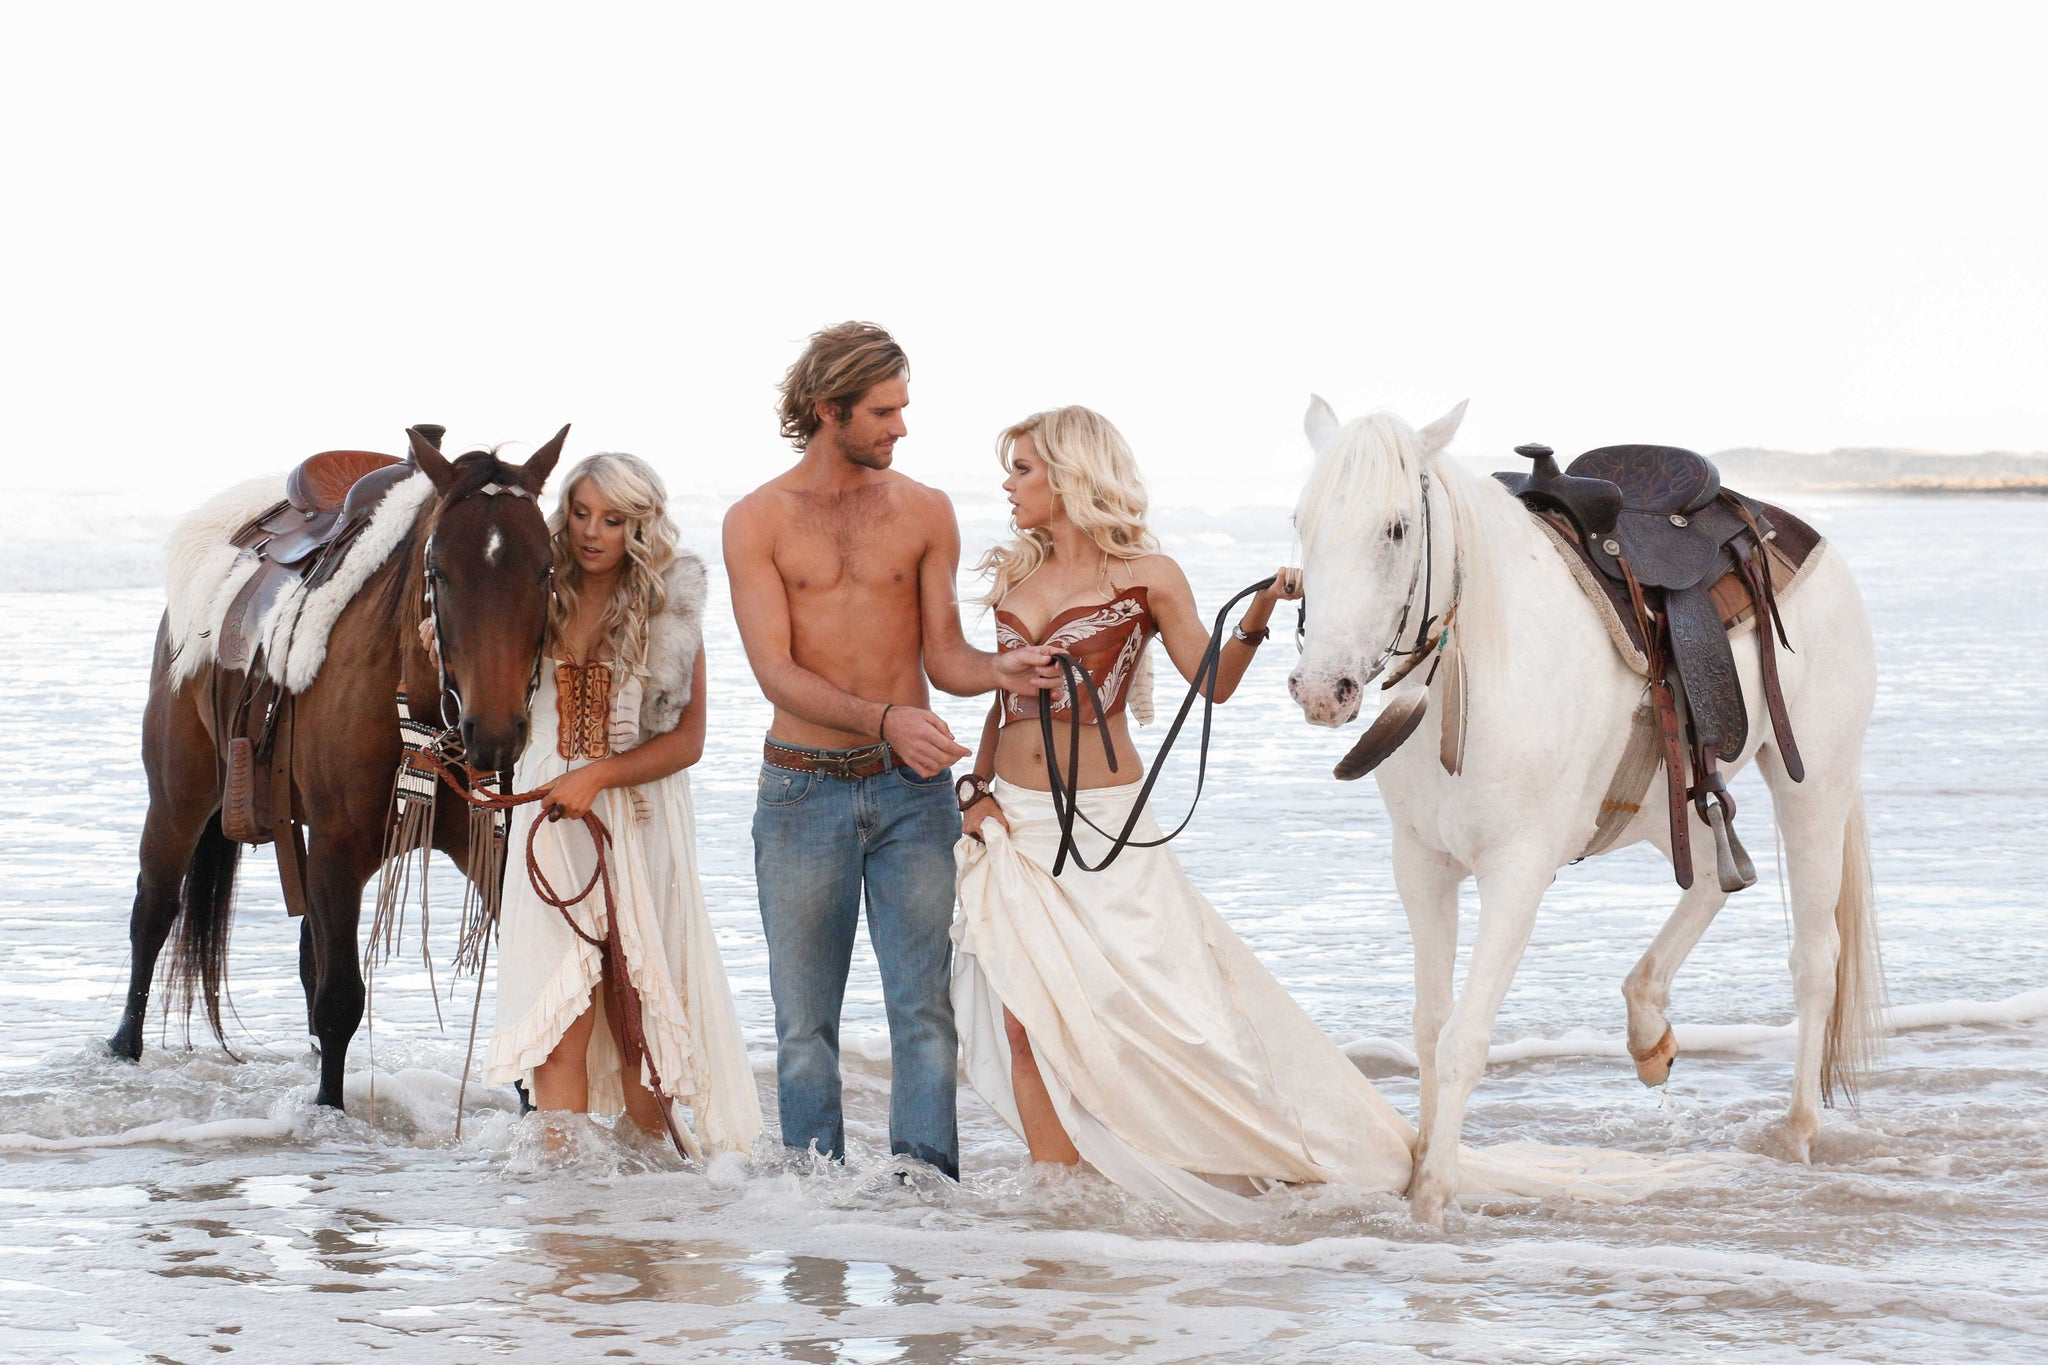 Sophie Monk on the beach with friends and horses